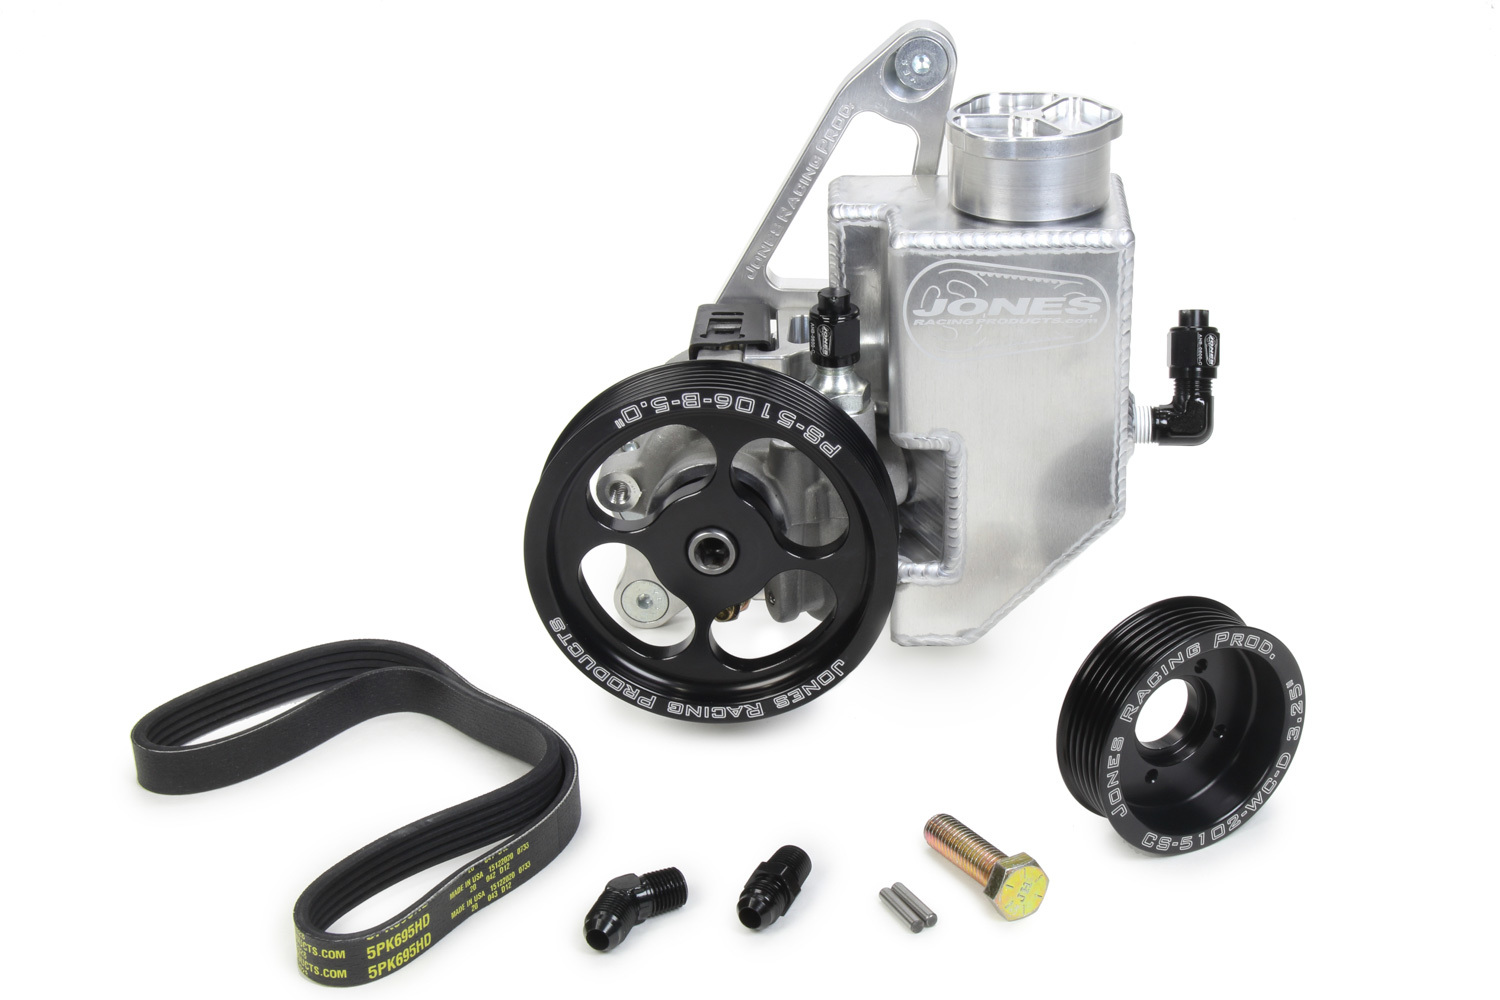 Jones Racing 1020-PS Pulley Kit, 6 Rip Serpentine, Aluminum, Black Anodized / Natural, Chevy V8, Kit